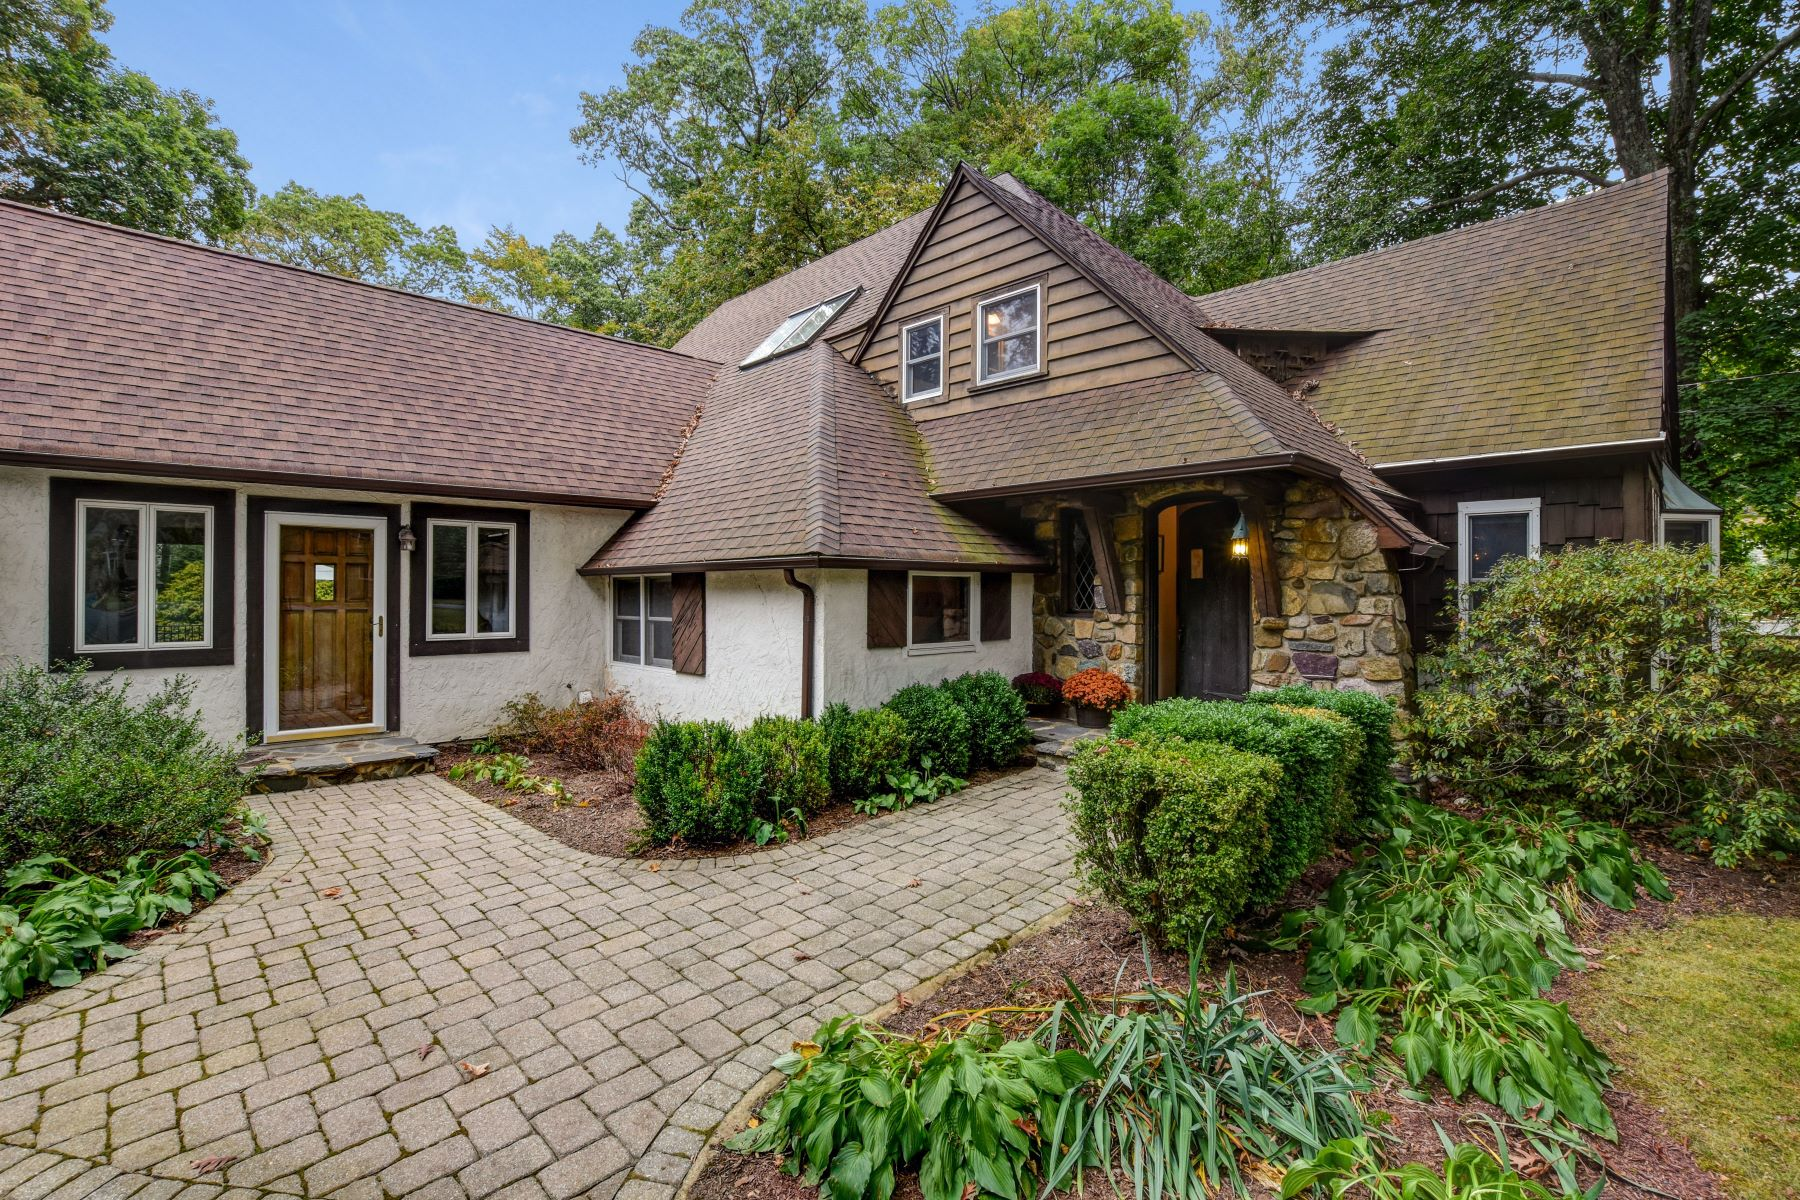 Single Family Homes for Active at Charming Custom Tudor 24 Old Wood Road Morris Plains, New Jersey 07950 United States